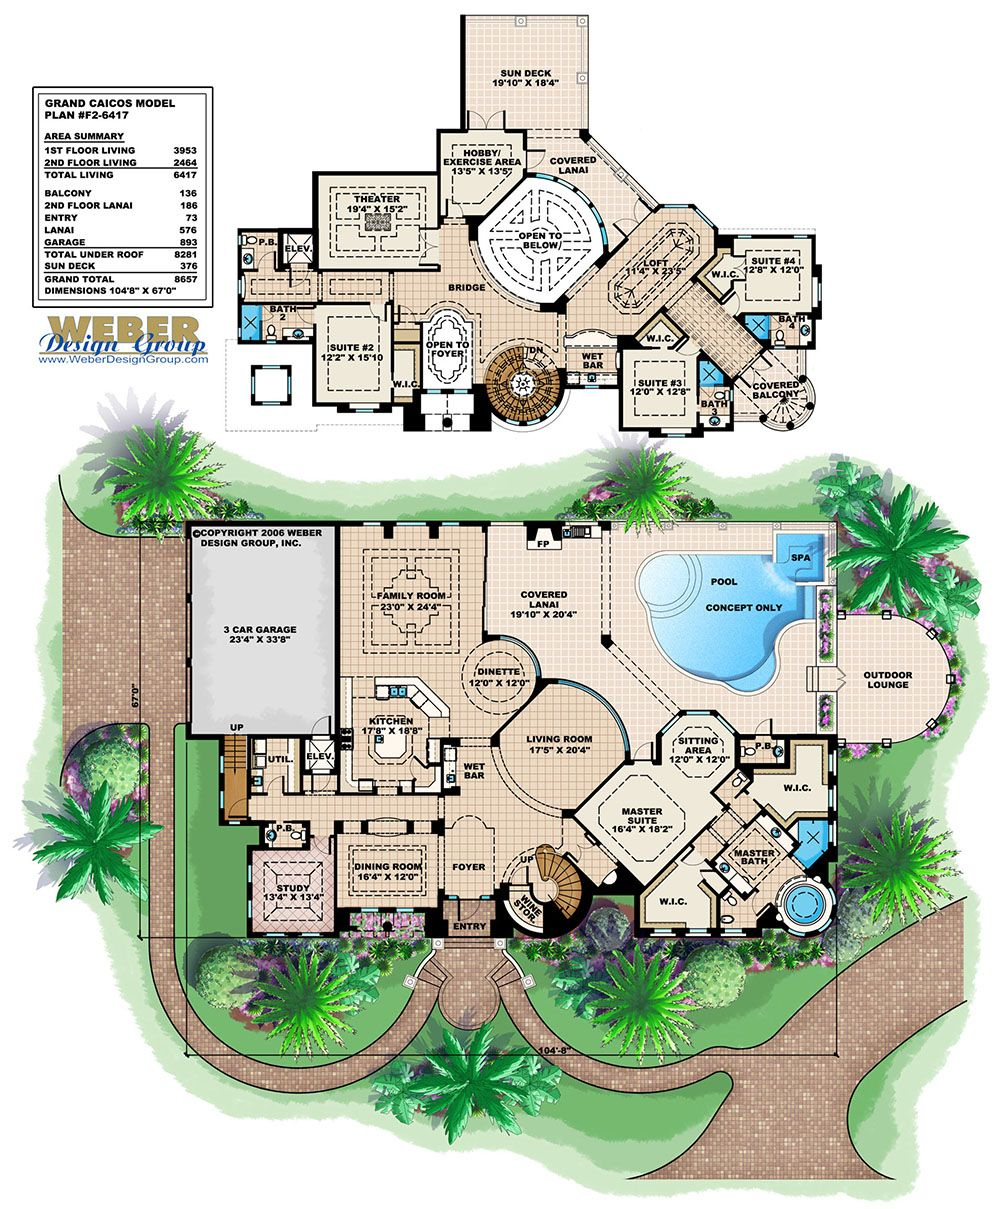 Mediterranean Home Floor Plans: Mediterranean House Plan: Luxury 2 Story Home Floor Plan